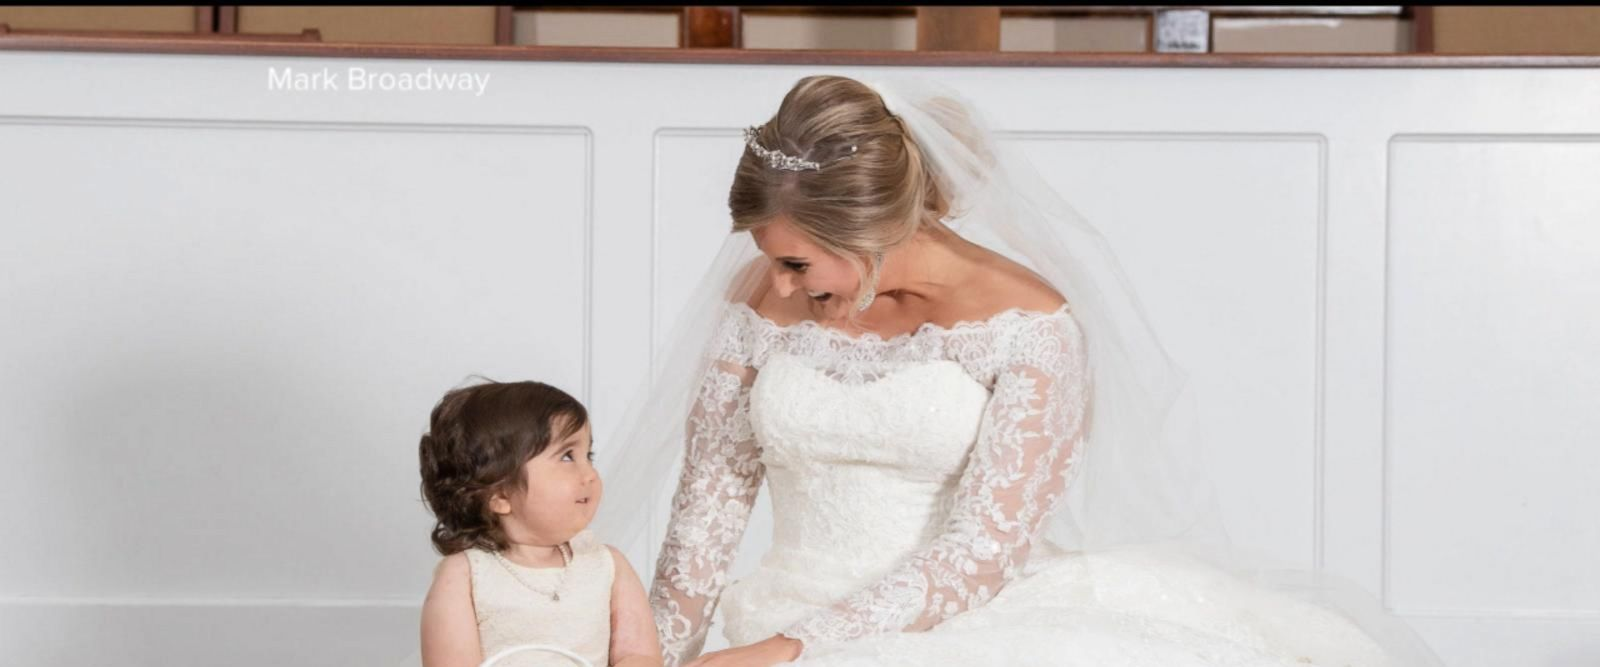 VIDEO: Toddler is flower girl at bone marrow donor's wedding